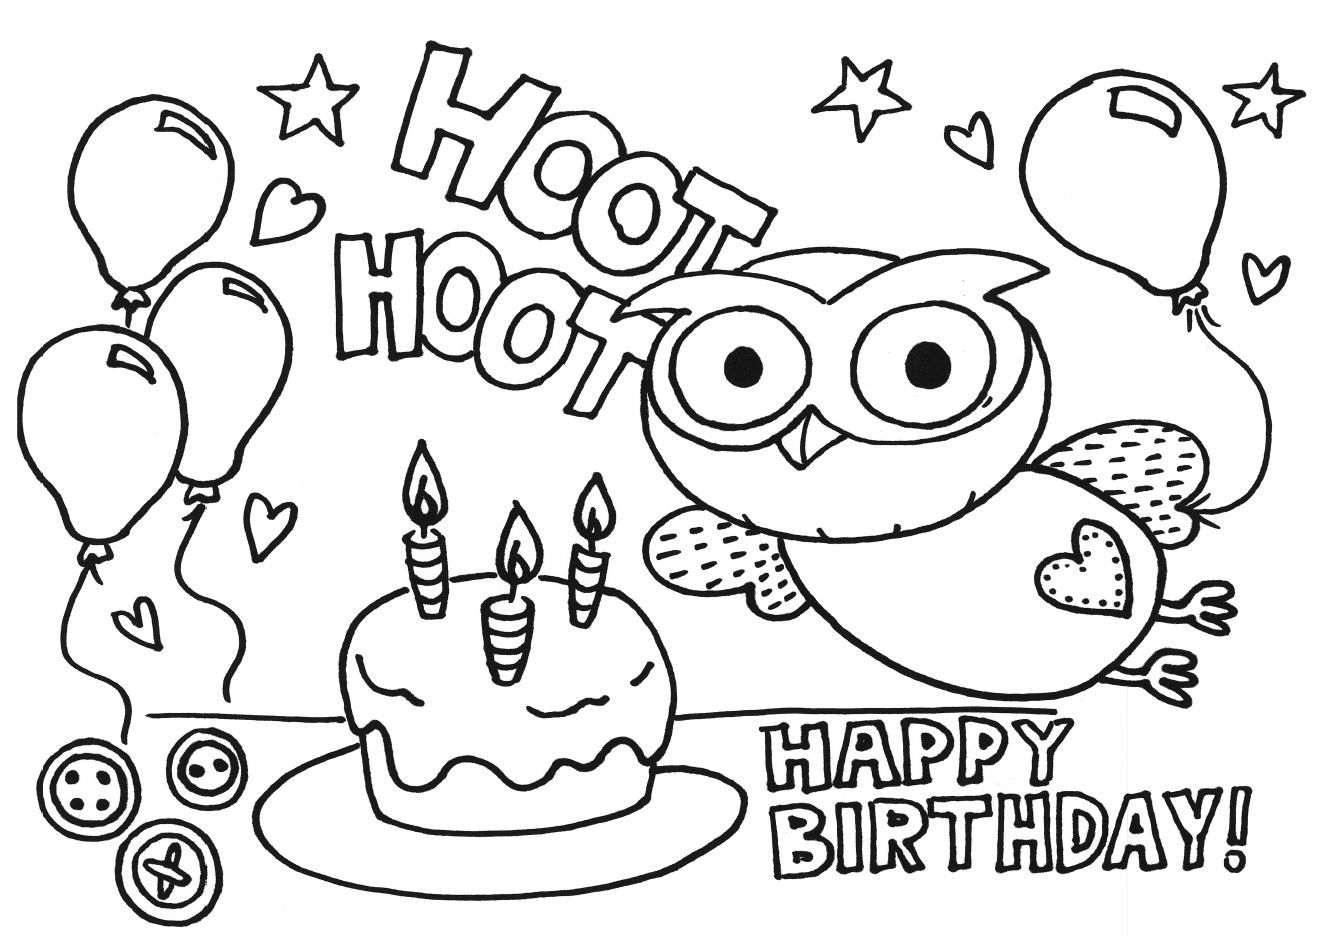 my birthday party drawing ; 0068ed963e42c0989a7104533303f062